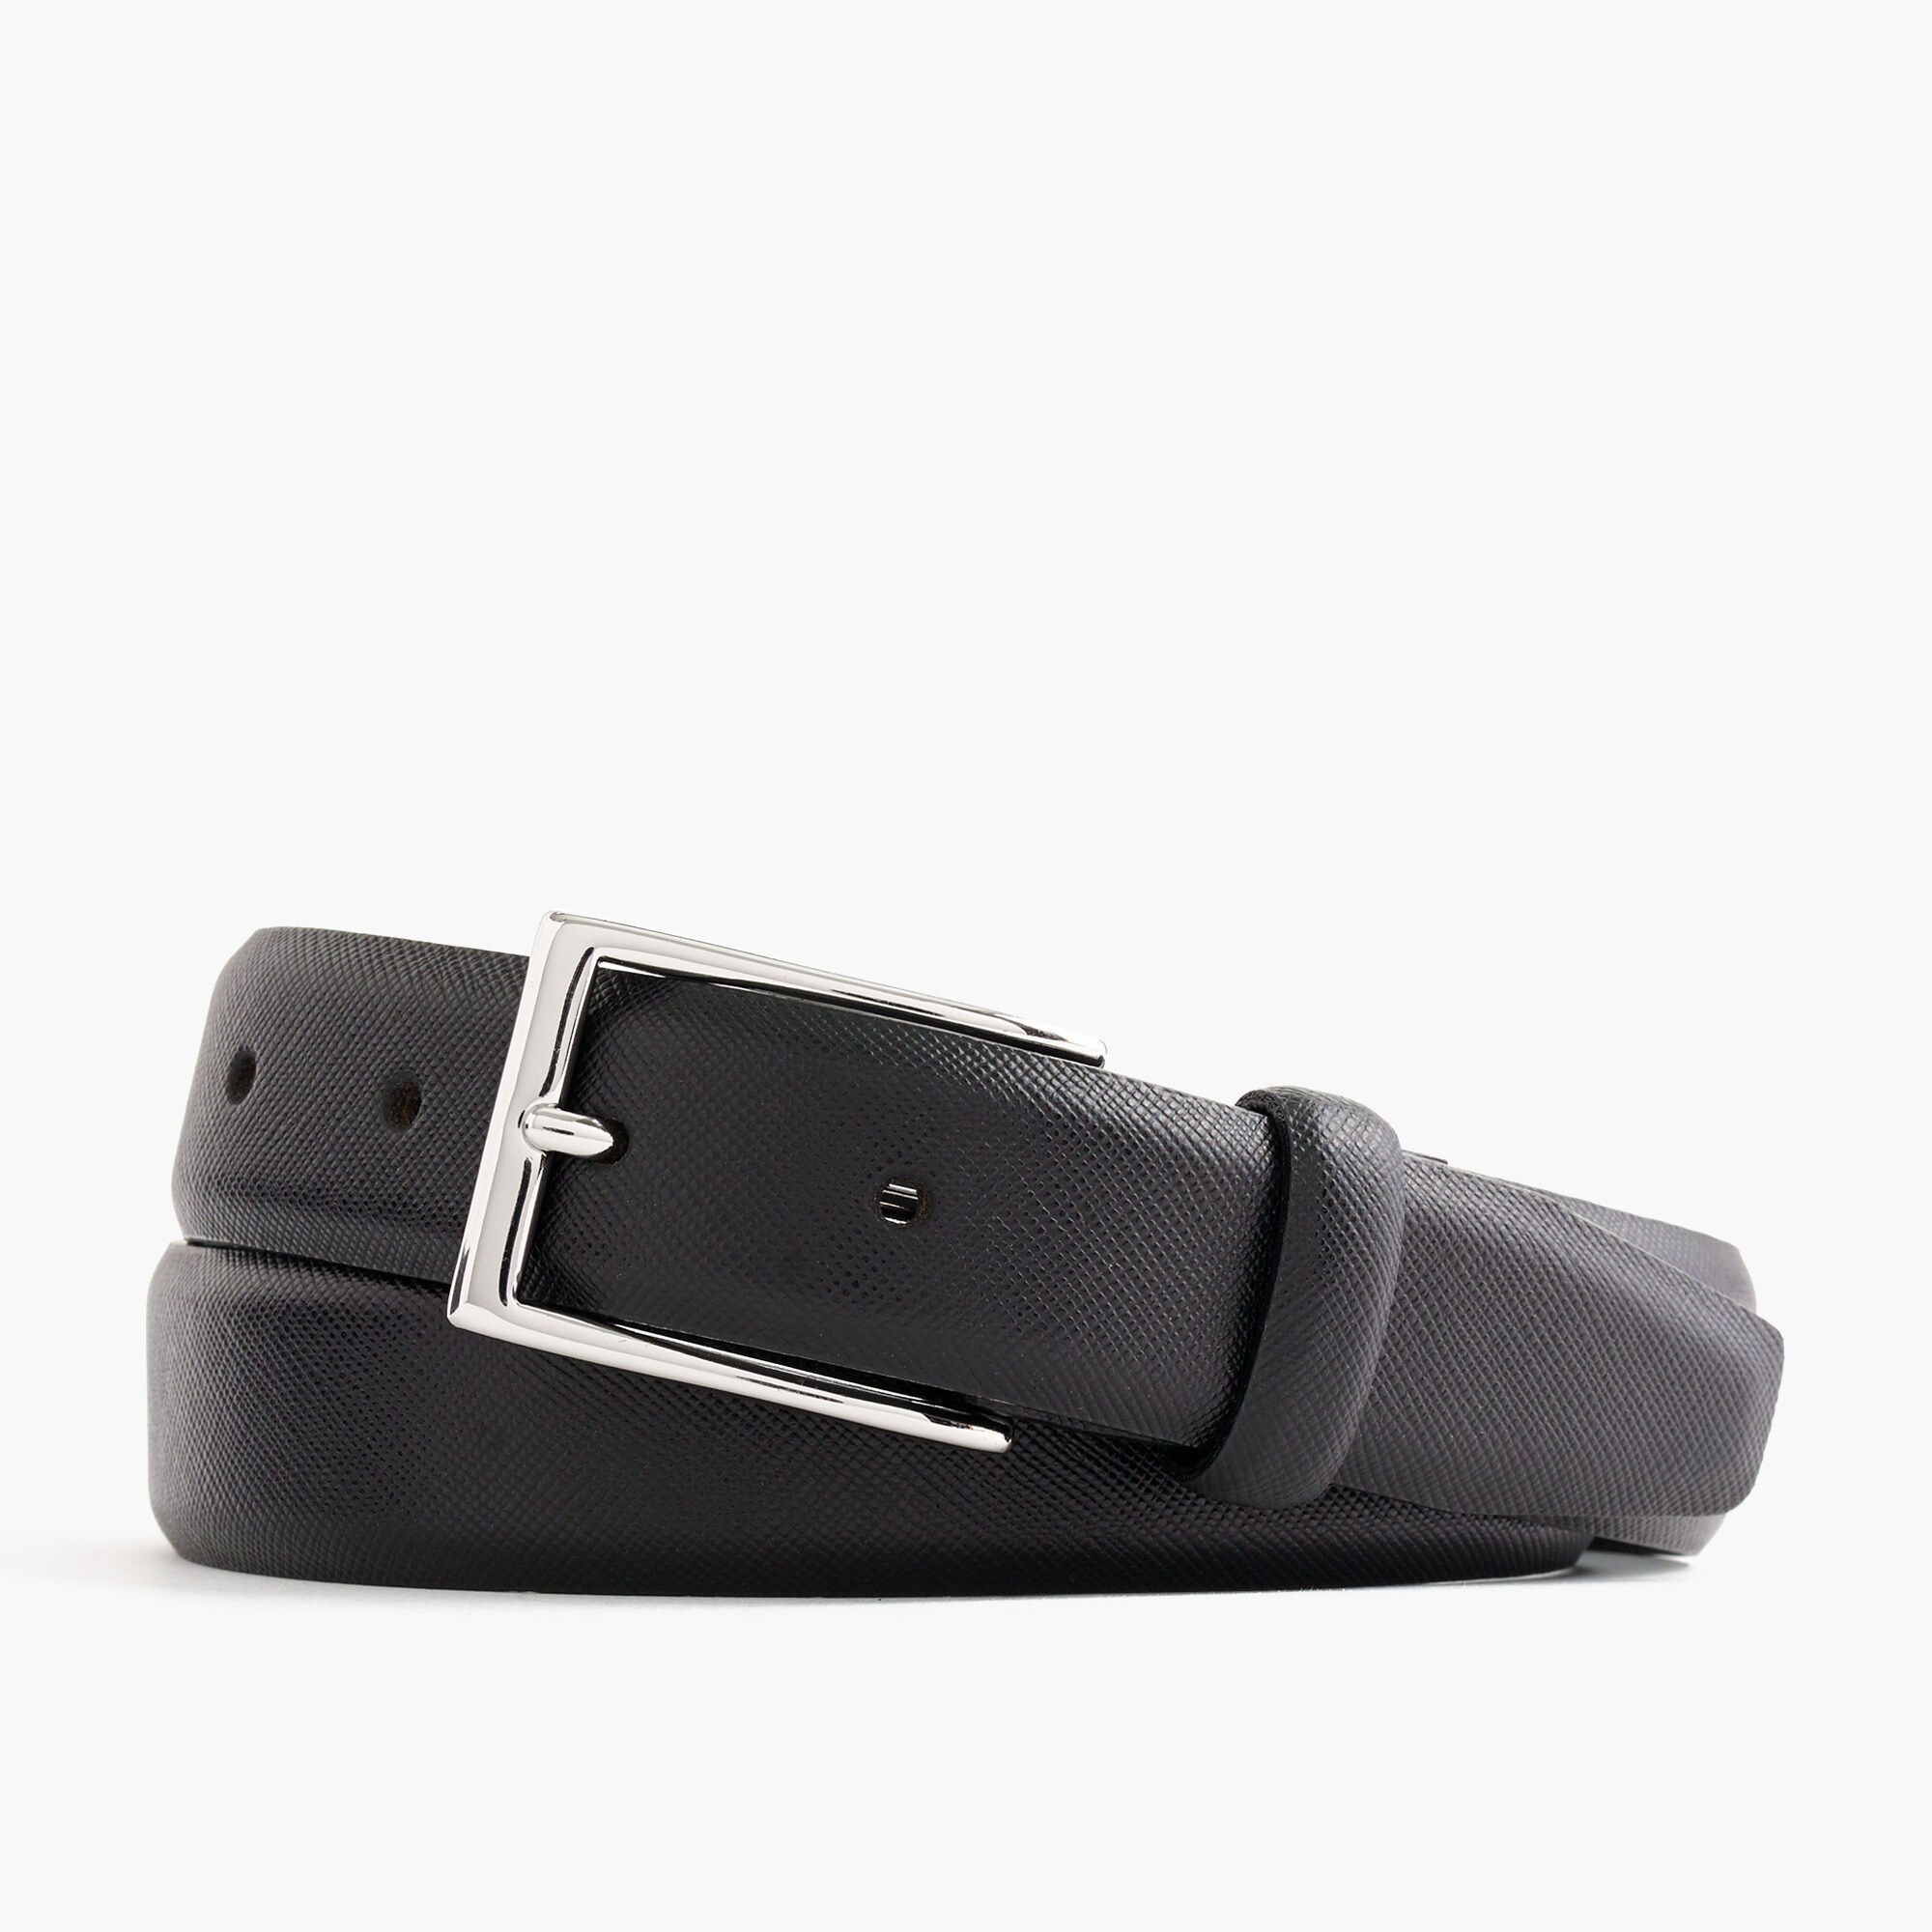 textured leather dress belt : men's belts